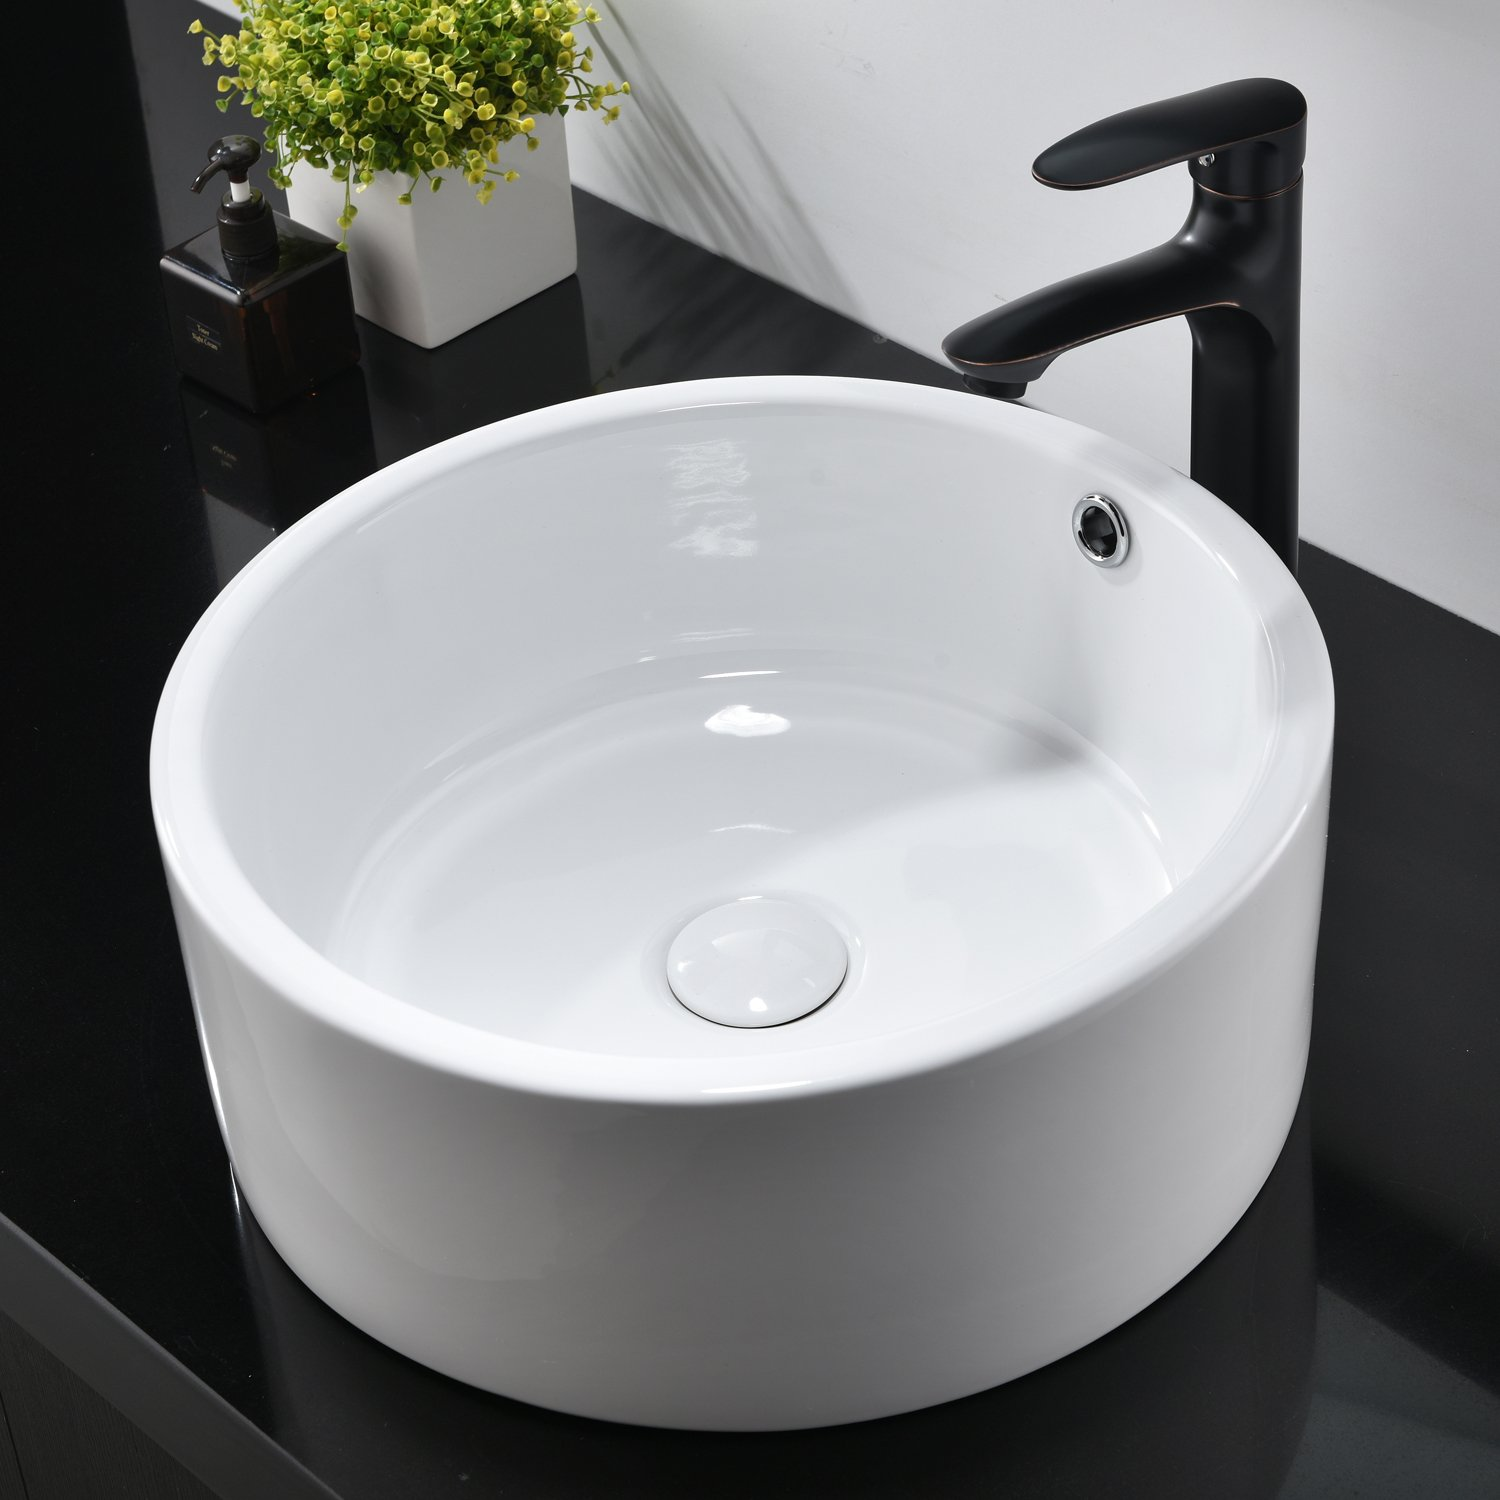 Hotis White Porcelain Ceramic Countertop Bowl Lavatory Round Above Counter Vanity Bathroom Vessel Sink by HOTIS HOME (Image #3)